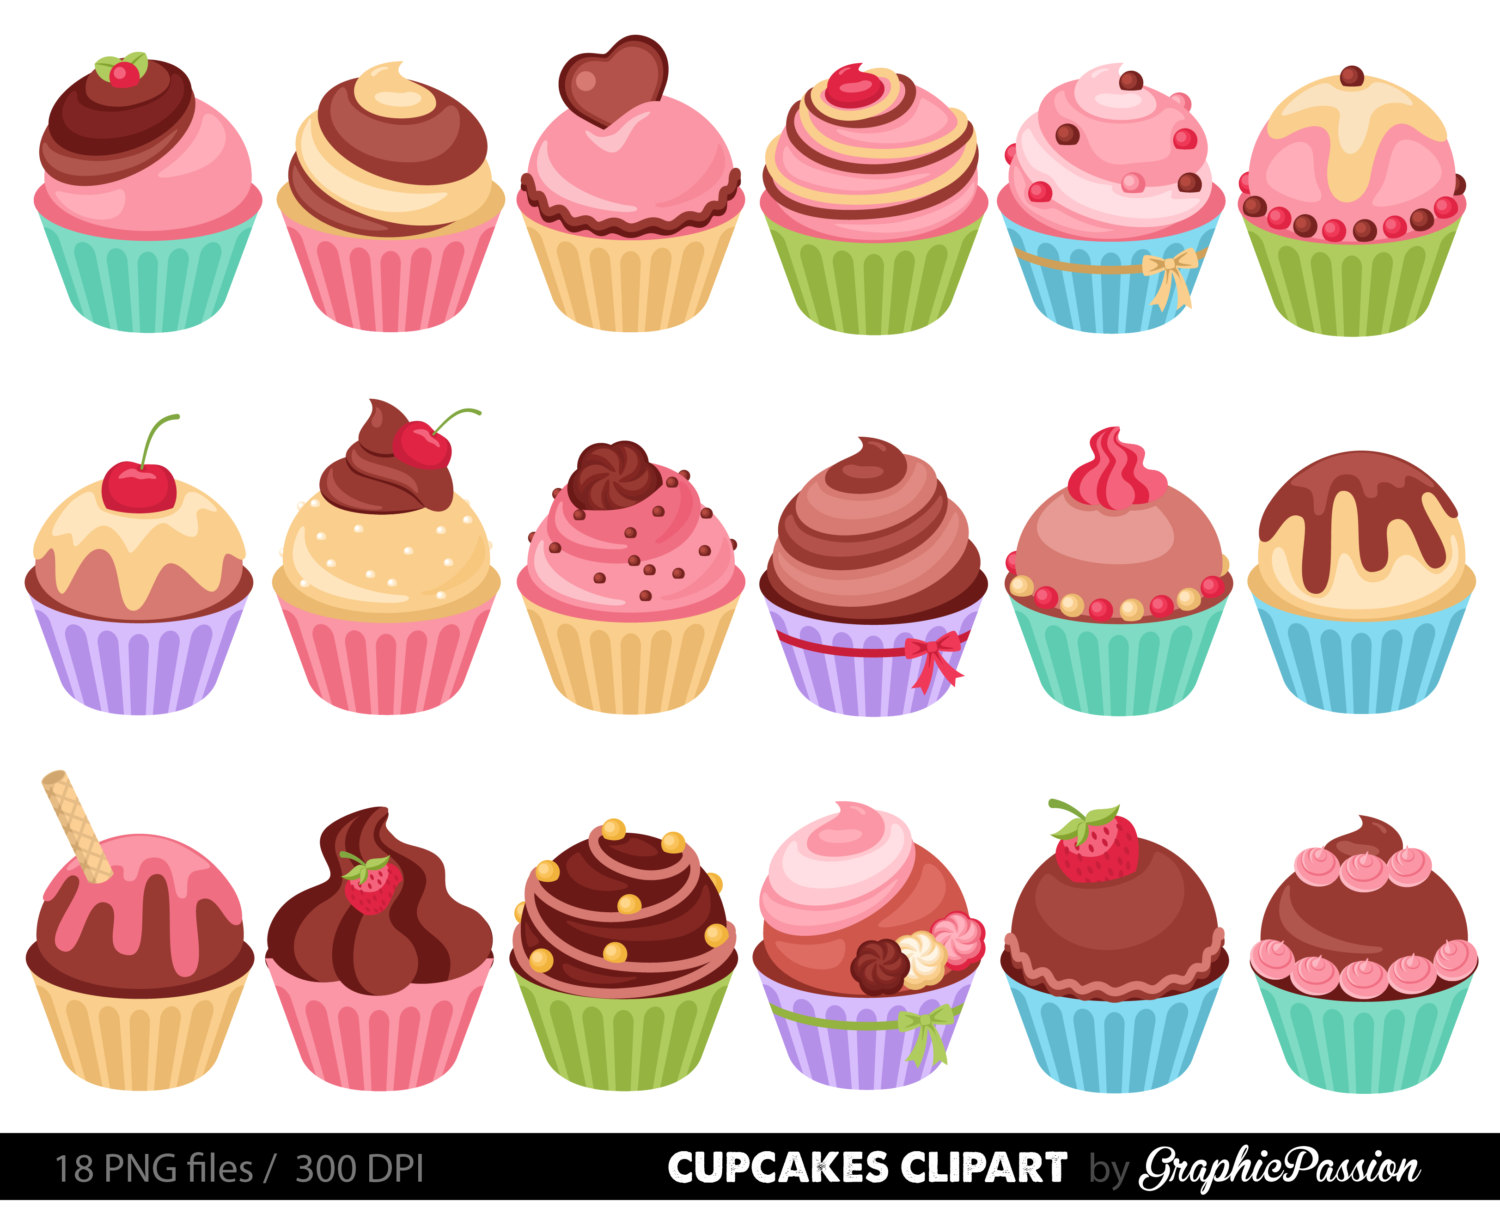 Cupcakes Clipart & Cupcakes Clip Art Images.